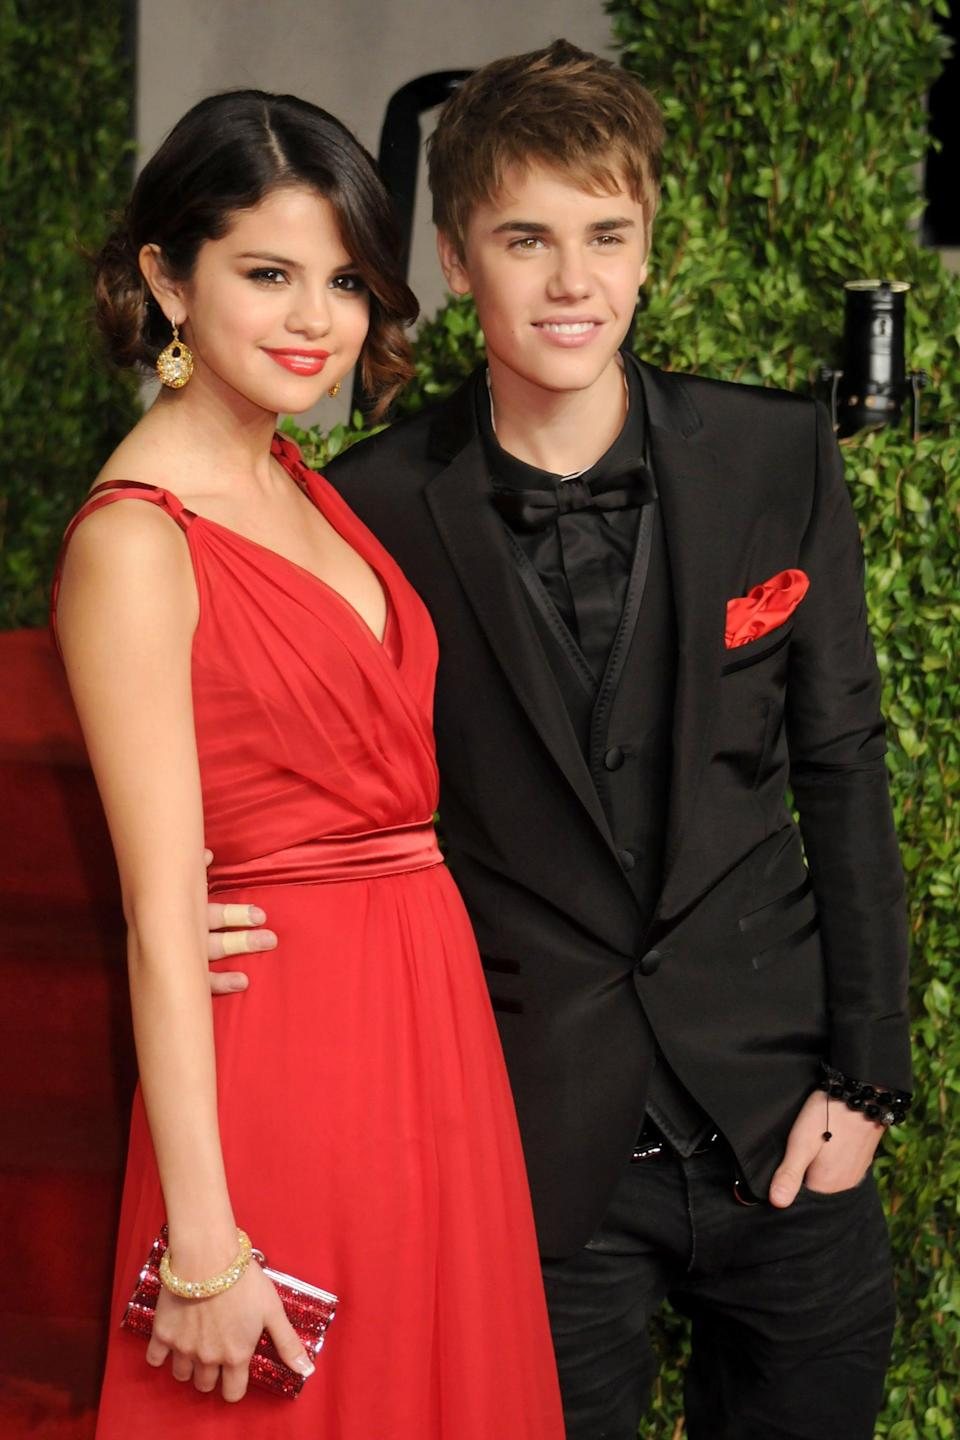 <p>Selena and Justin Bieber had a very adult-looking date night at the <b>Vanity Fair</b> Oscars afterparty in LA.</p>